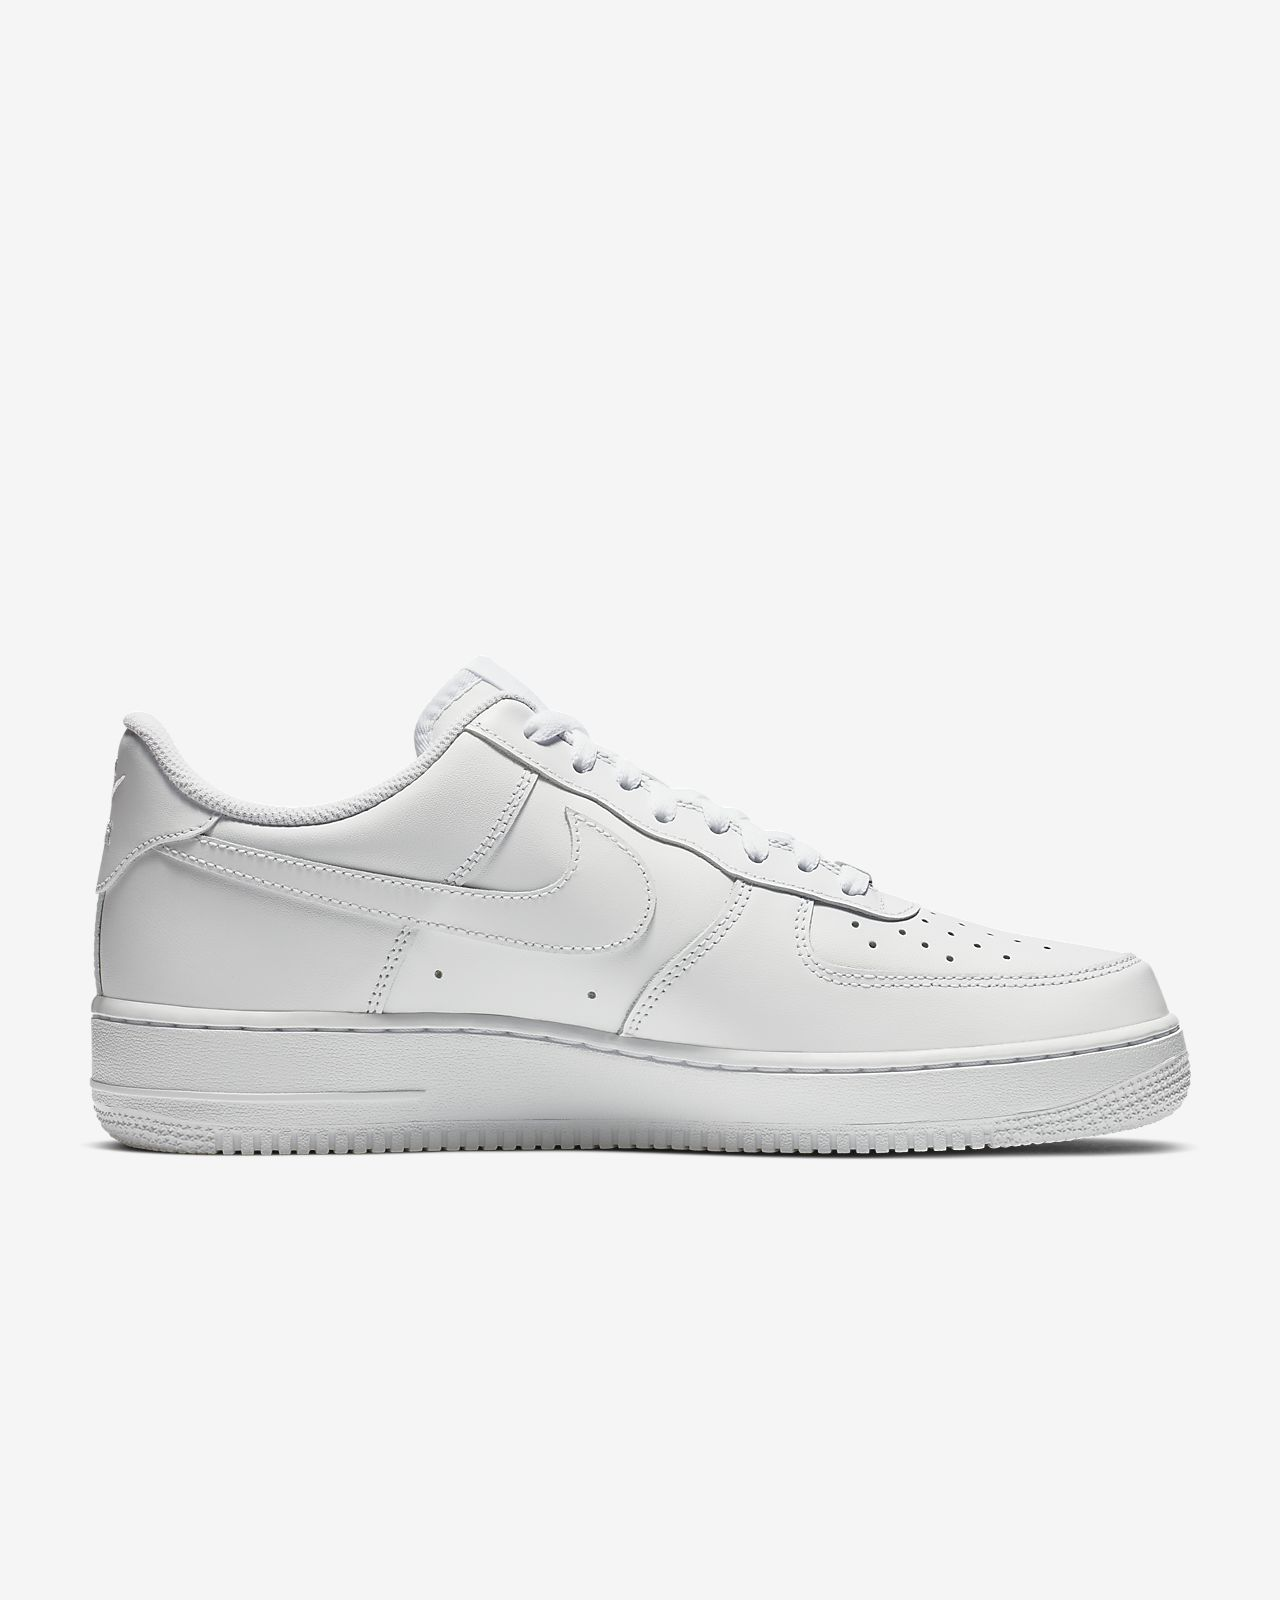 official photos 34de4 5f911 ... Chaussure Nike Air Force 1  07